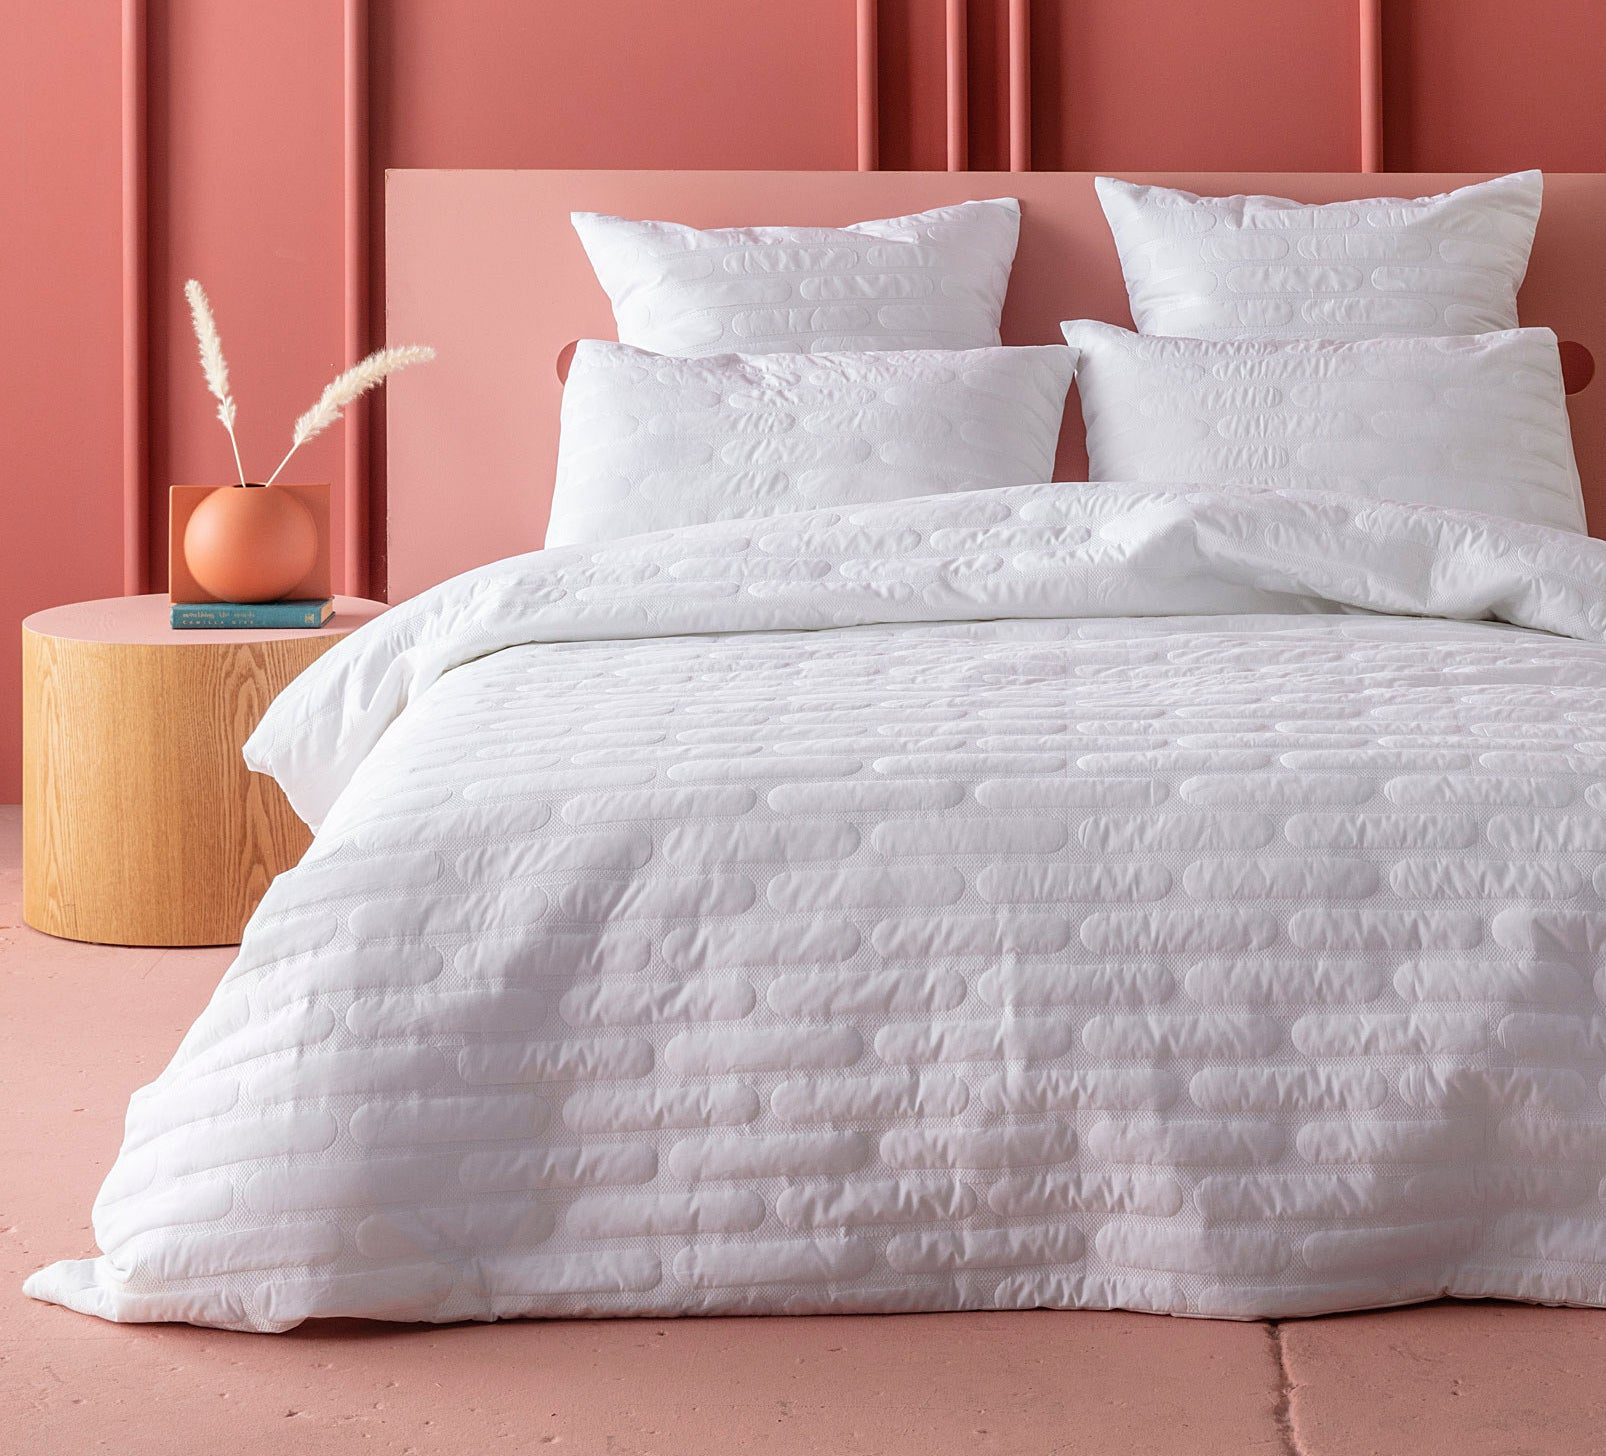 A duvet cover with a puffy quilted pattern on a bed with four pillows